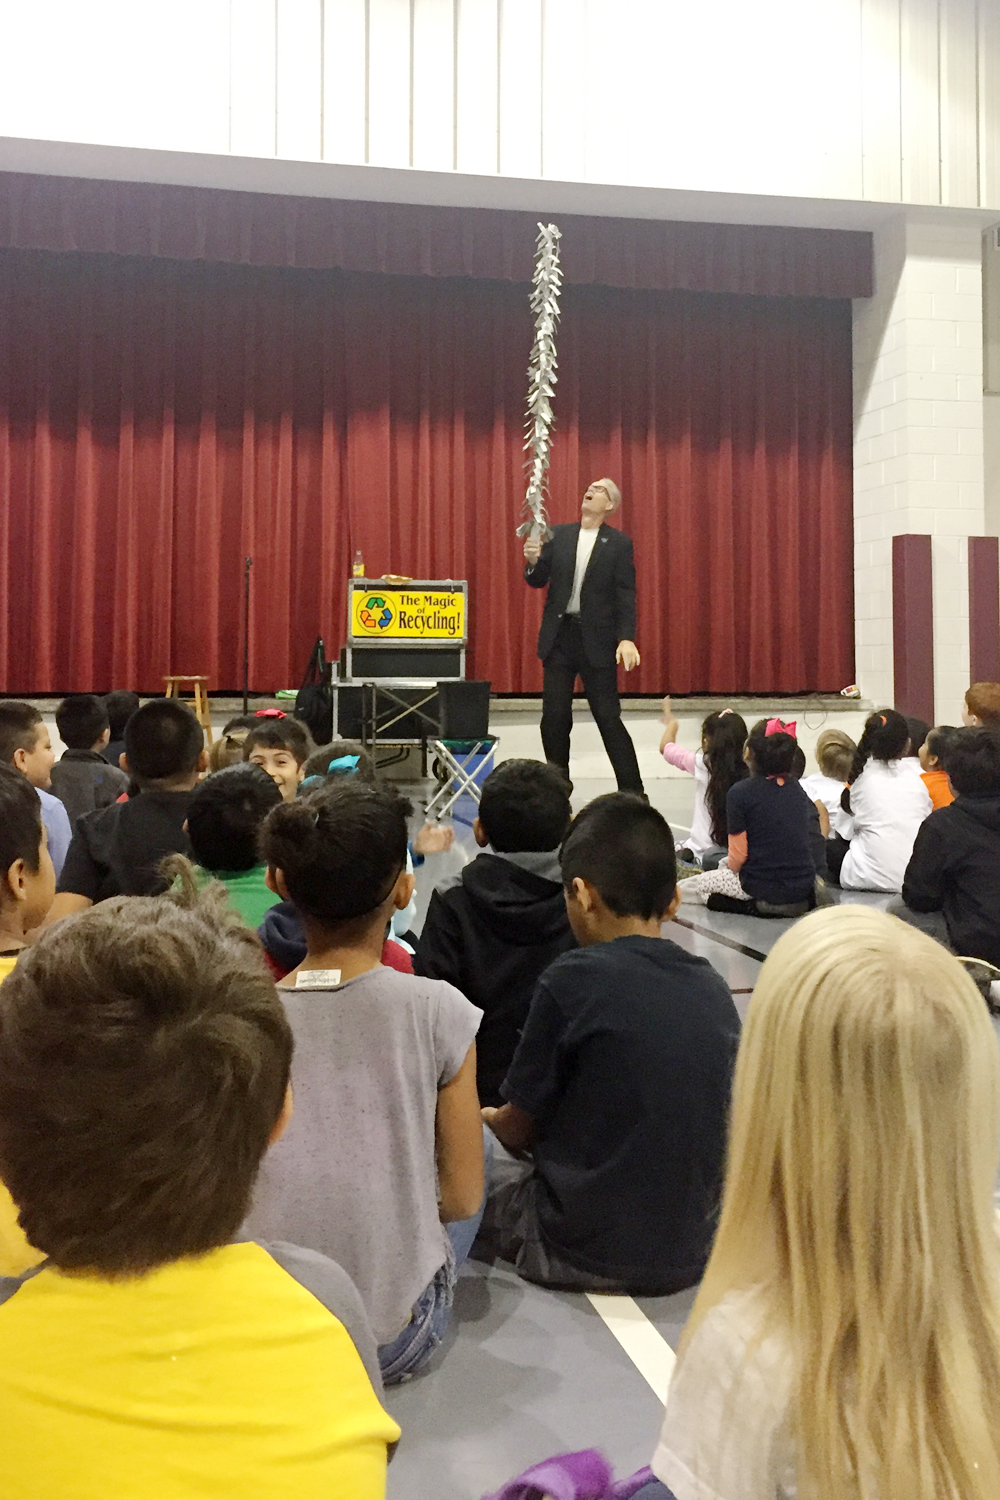 Students look on as a rolled-up newspaper magically transforms back into a tree during the Magic of Recycling show with magician Greg Allen. The program was hosted at Pleasant Grove Elementary and six other local schools during the week of November 7.